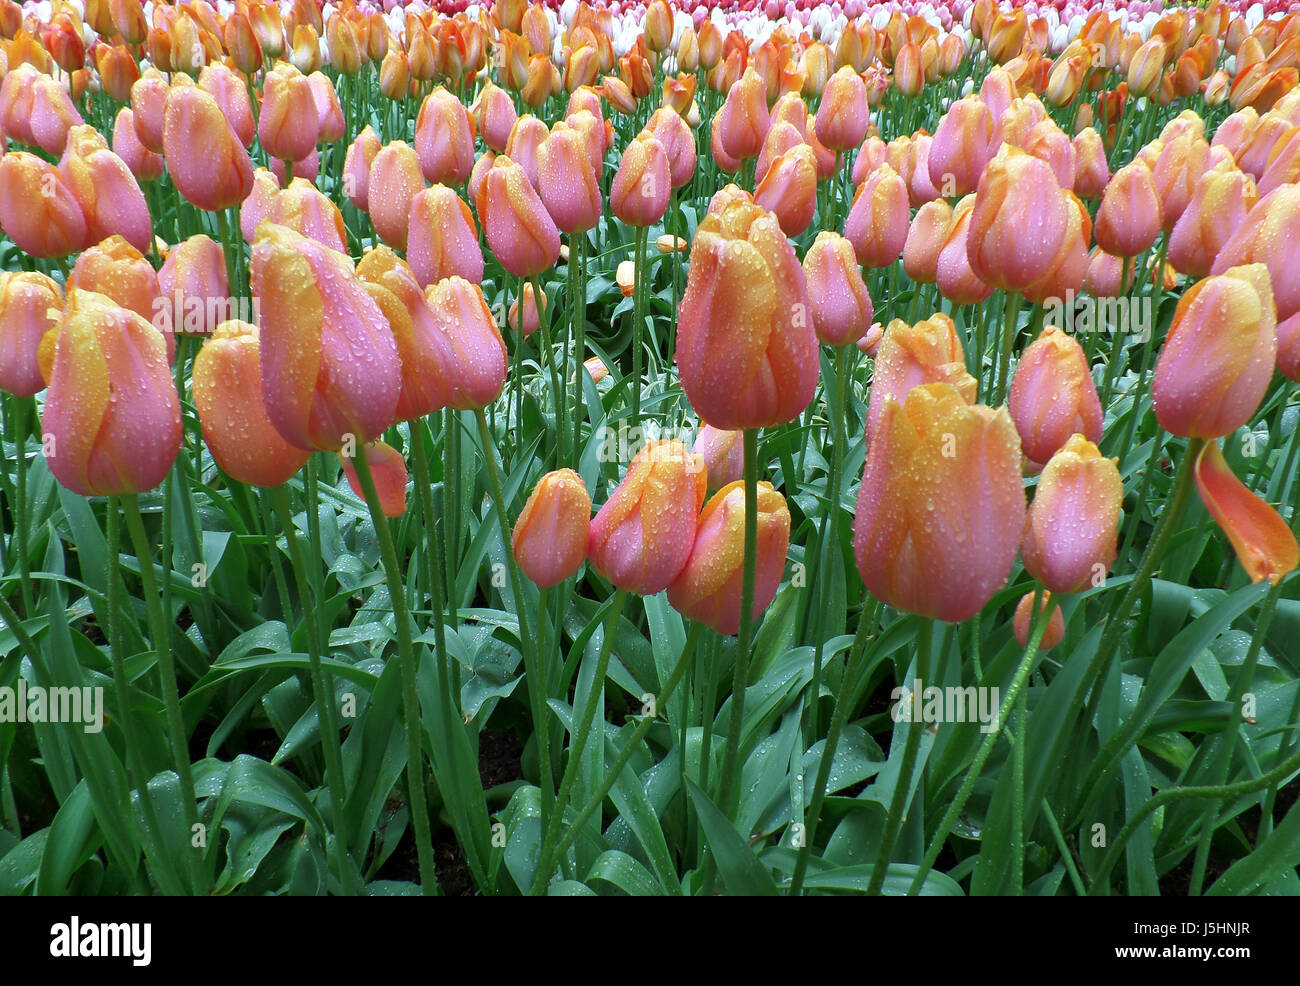 Bunch of Blooming Pink and Yellow Two-Tone Tulip Flowers with Raindrops - Stock Image